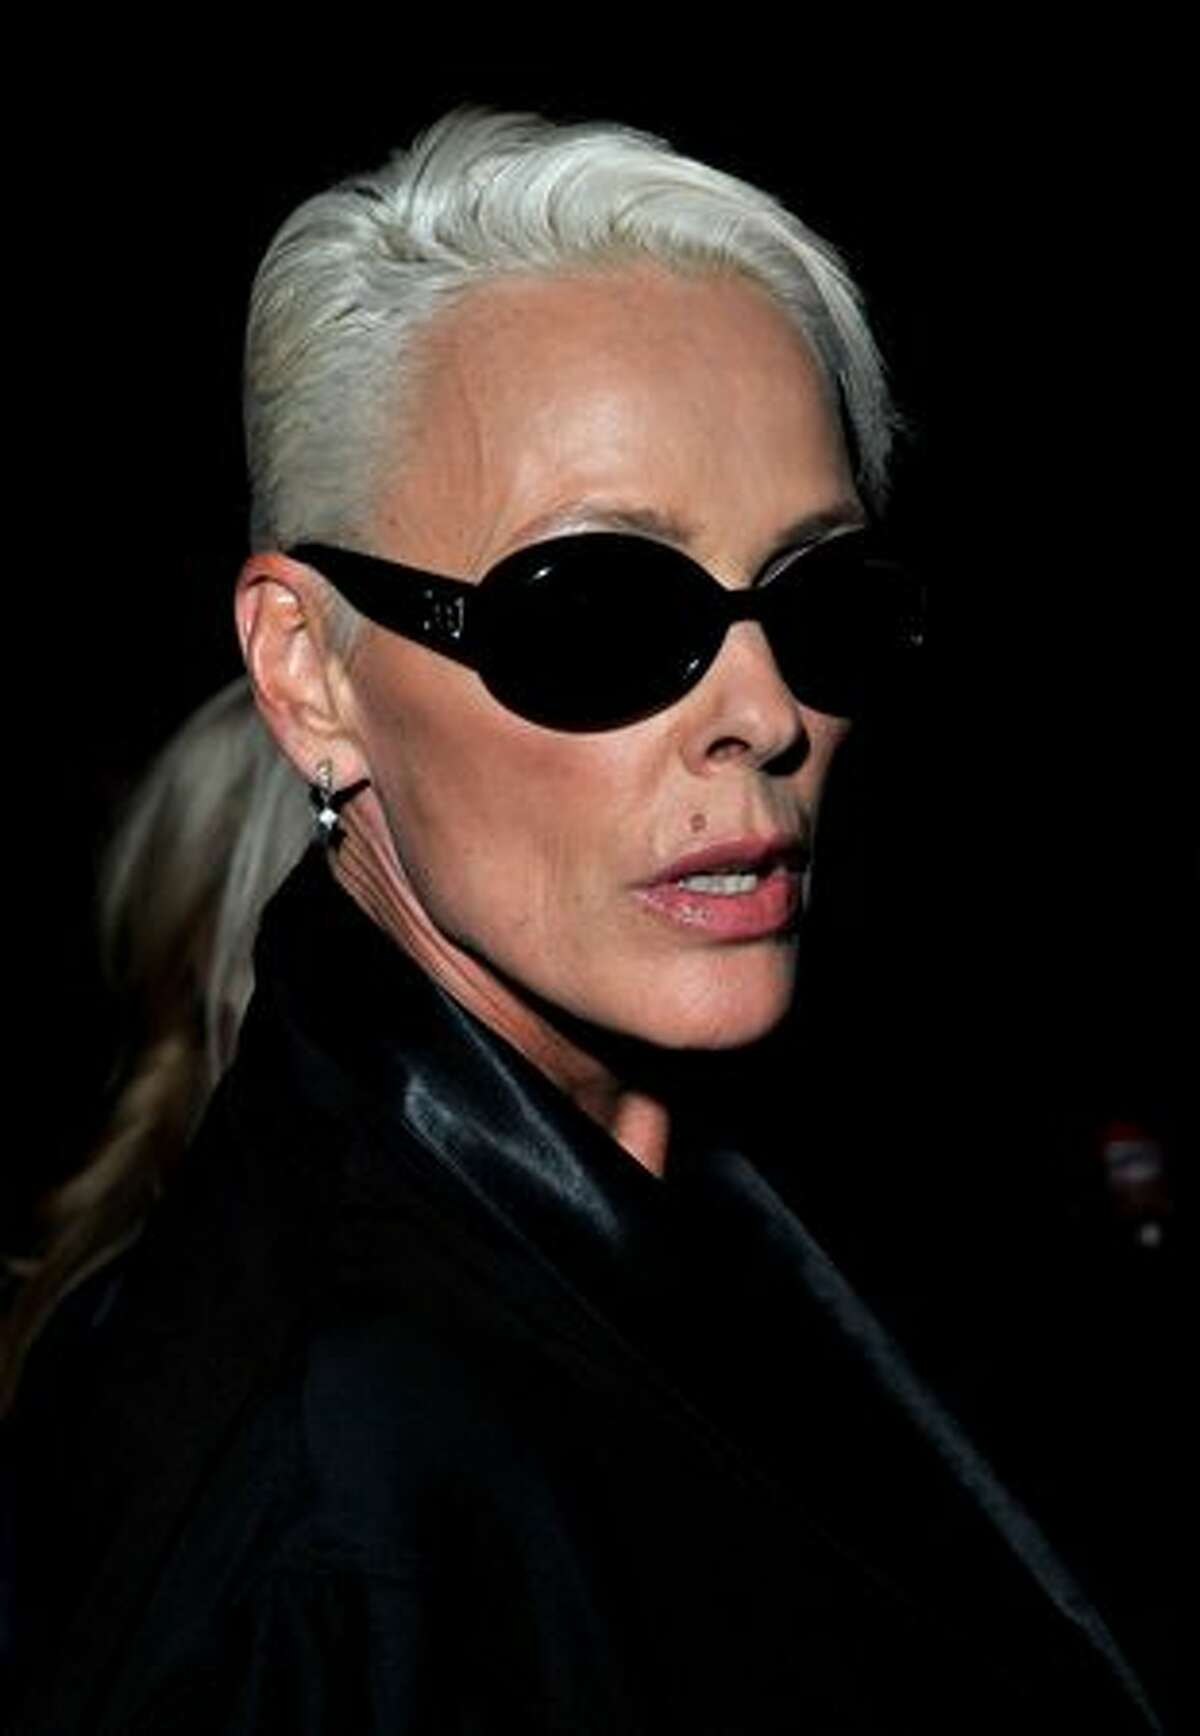 Brigitte Nielsen attends the PPQ Spring/Summer 2011 fashion show during LFW at Somerset House in London, England.